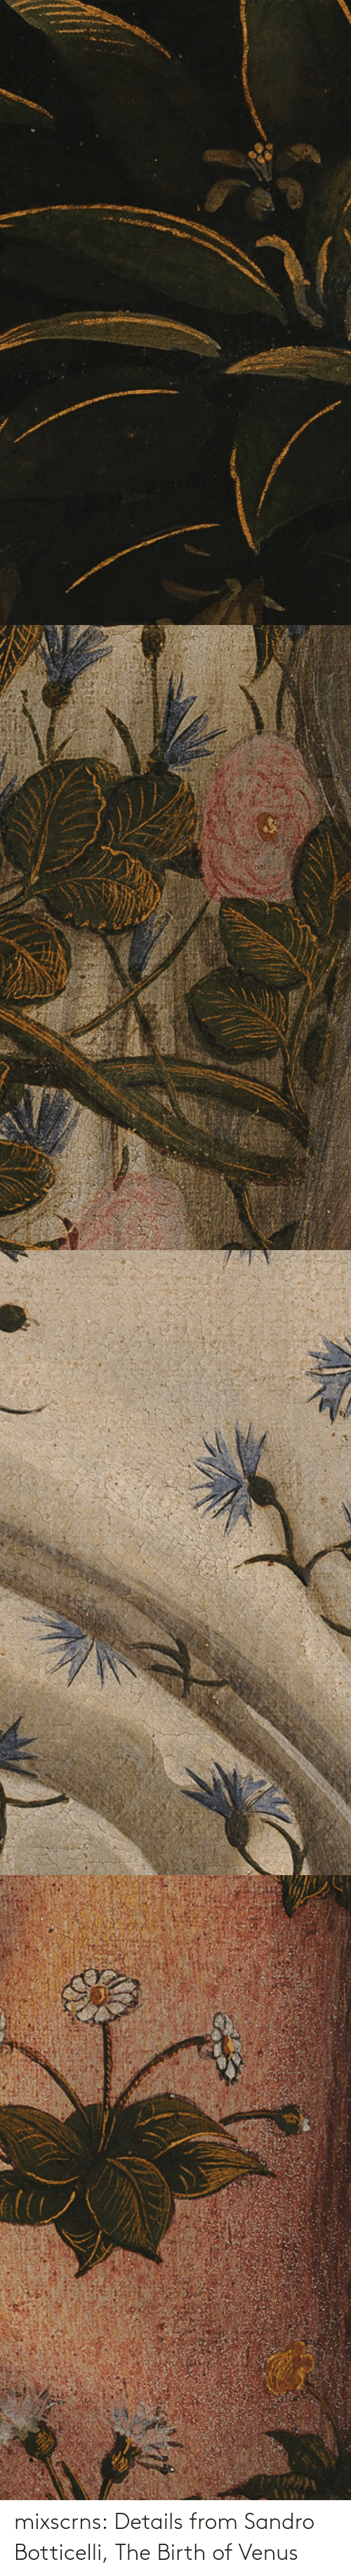 details: mixscrns:  Details from Sandro Botticelli, The Birth of Venus